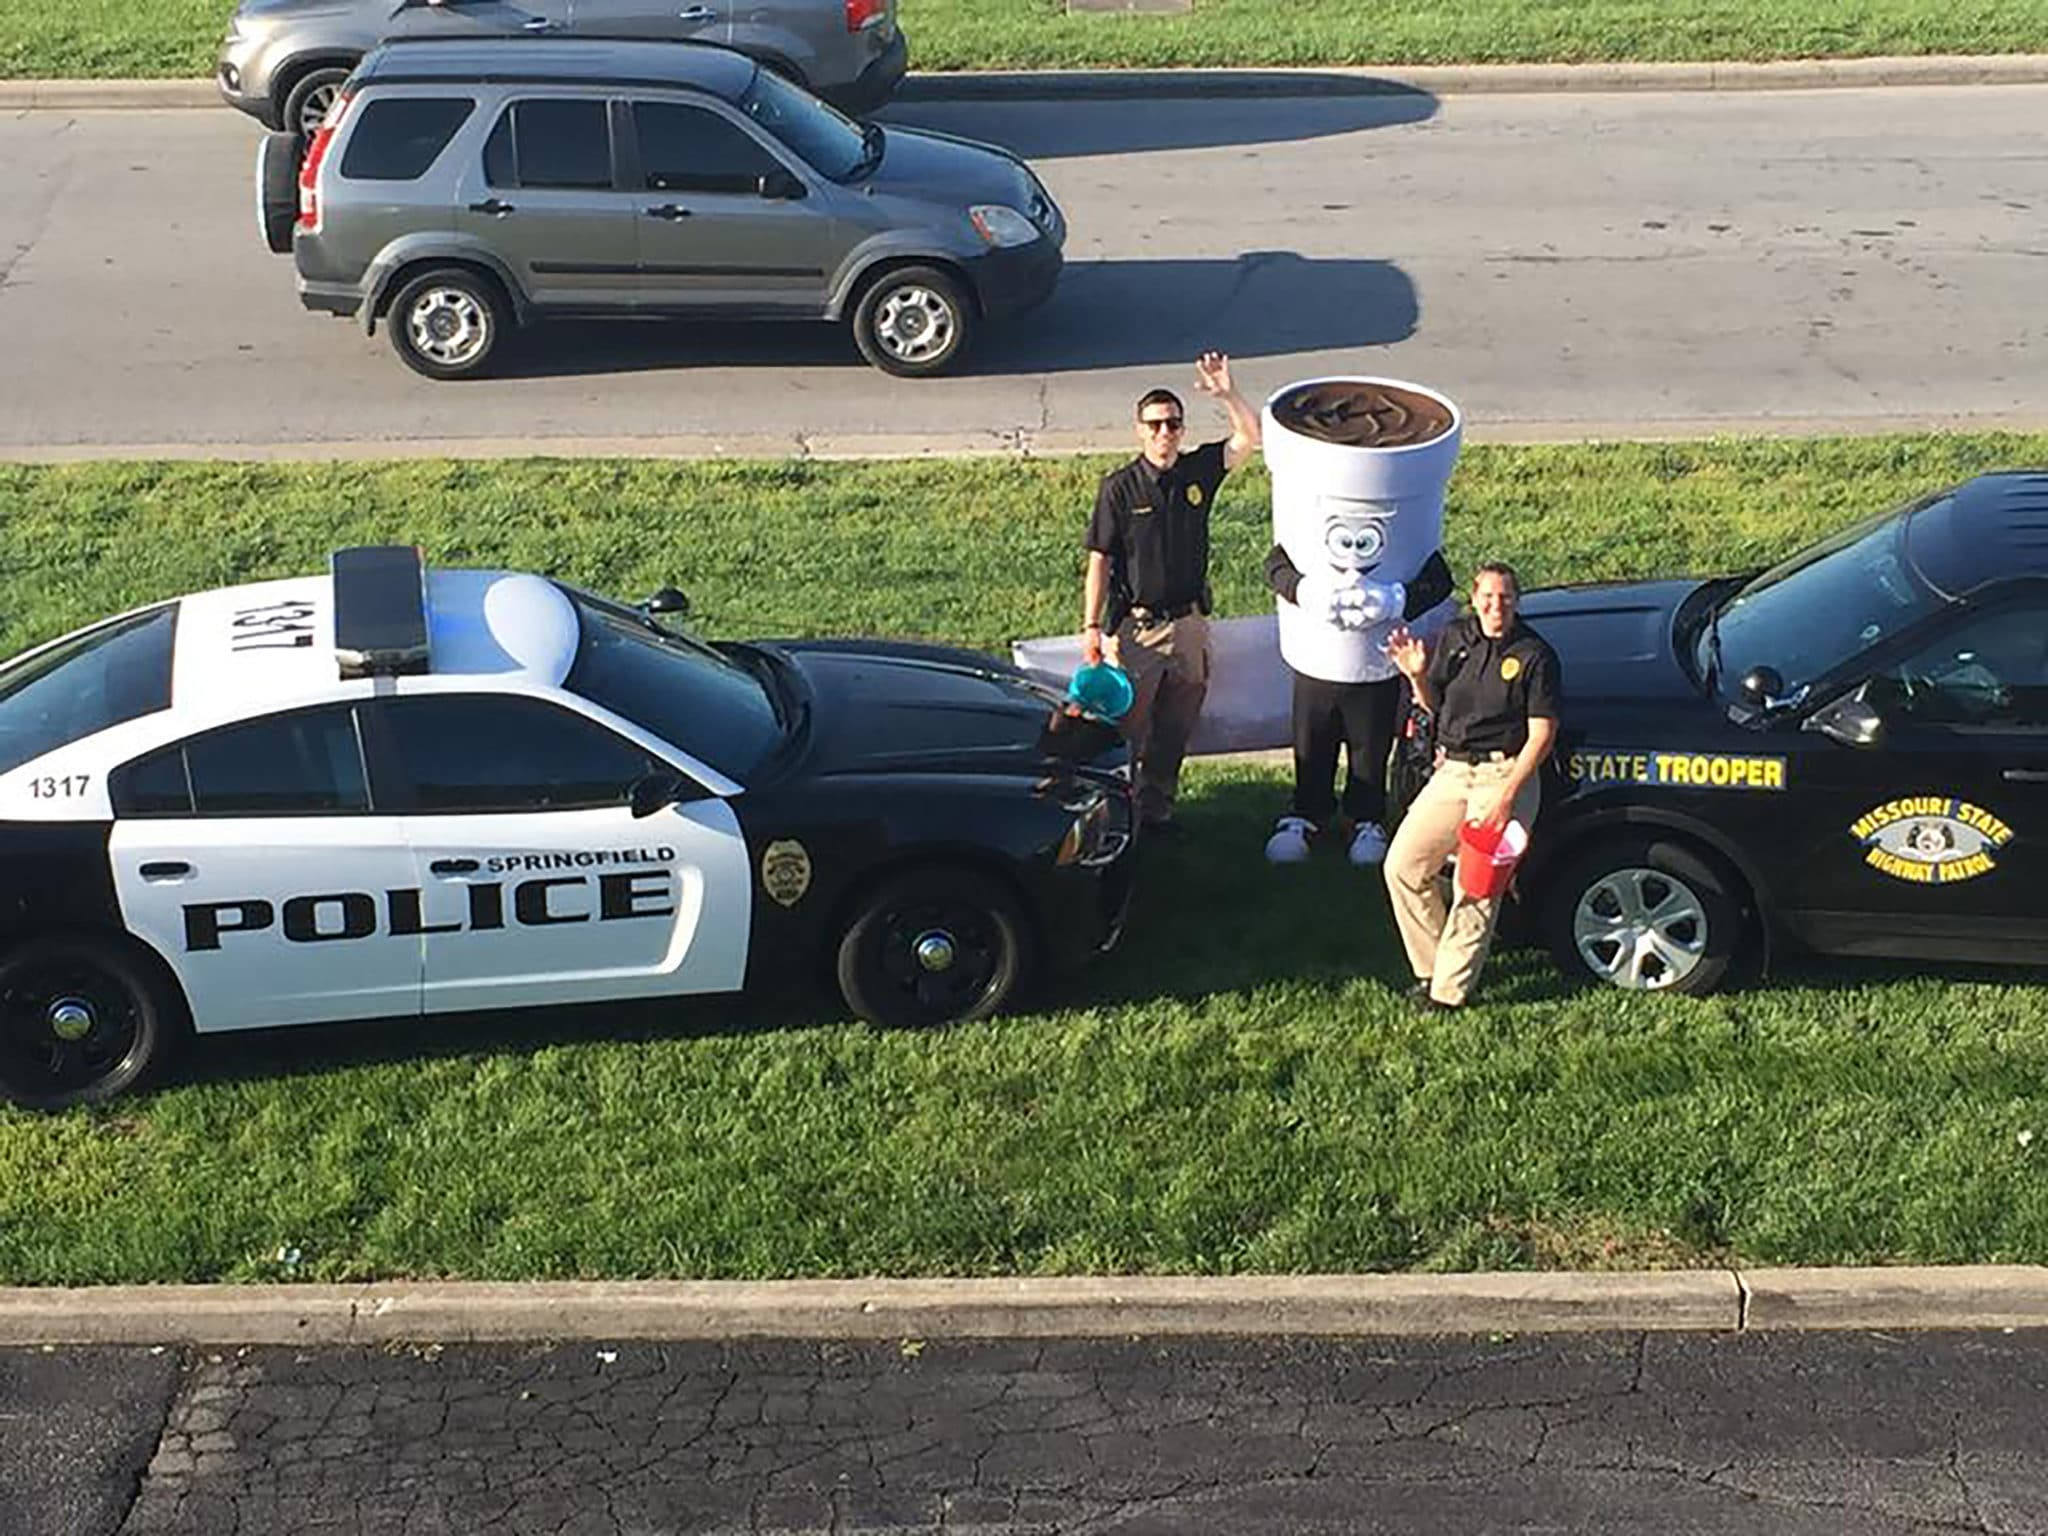 An aerial photo shows two law enforcement officers in front of their cop cars with a person wearing a coffee costume